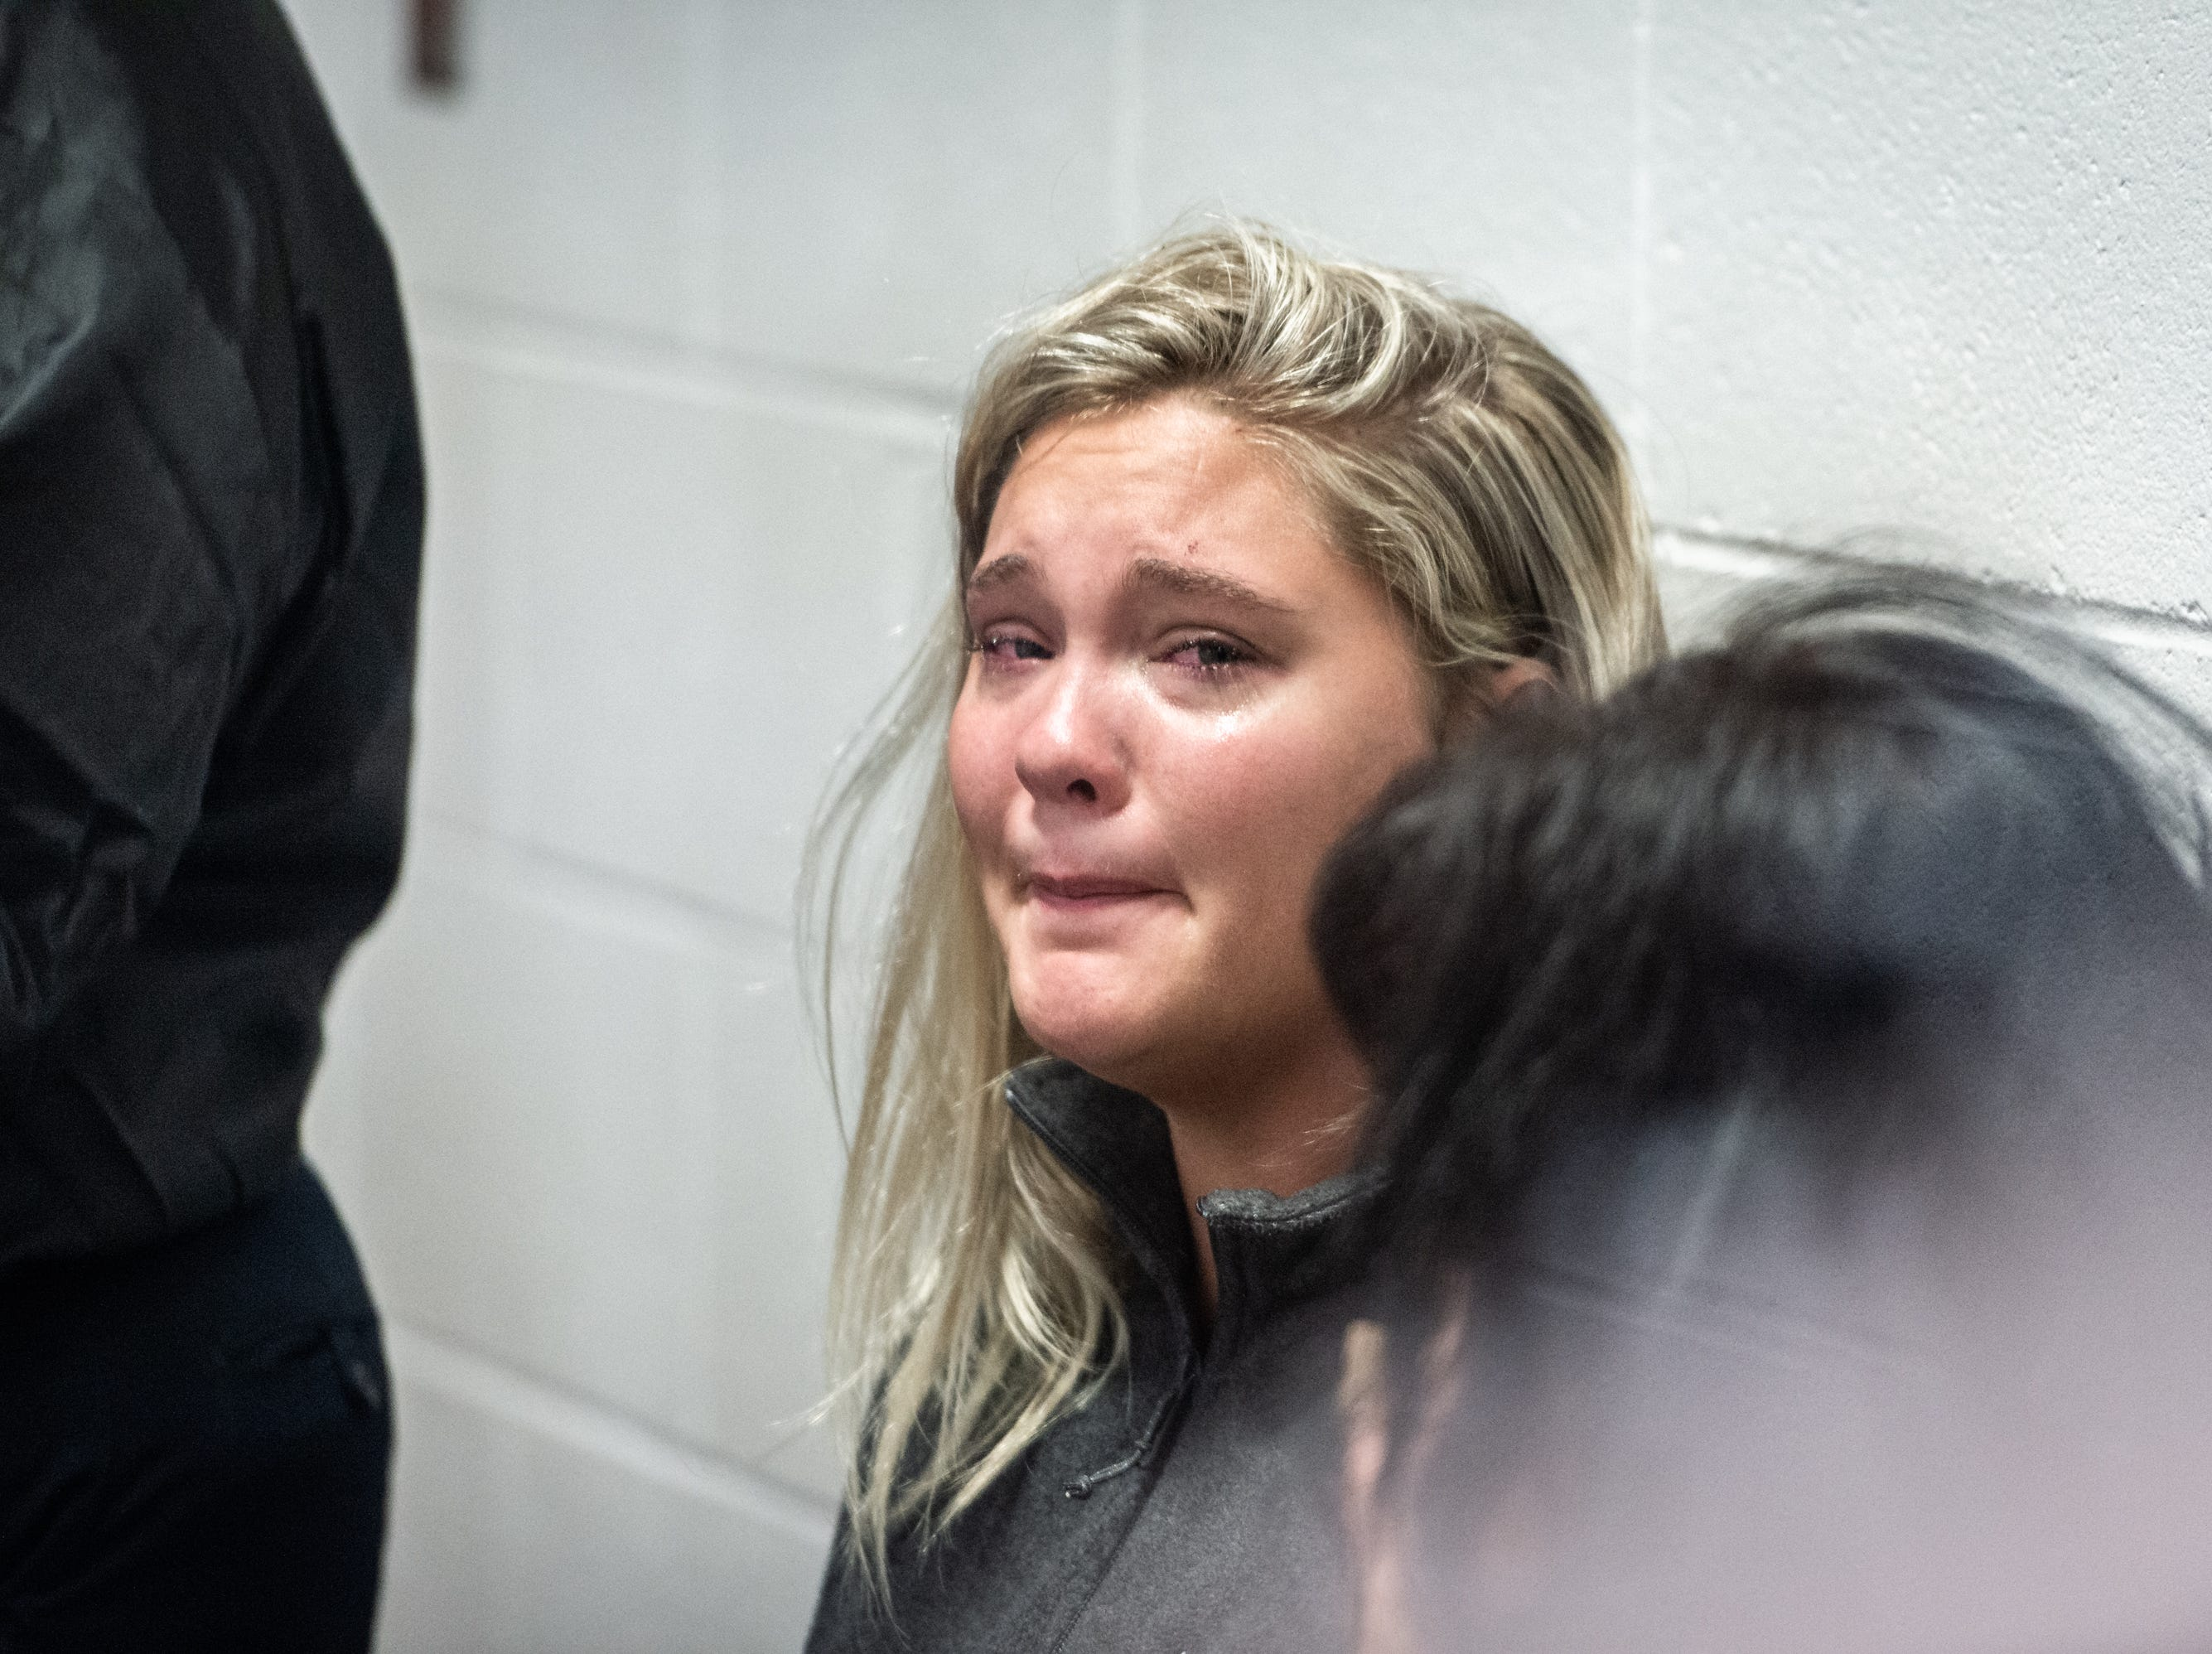 Savannah Hutchinson, 17, at the Greenville County Detention Center for her bond hearing Tuesday, May 7, 2019, following a car accident near Honea Path around 2:50 Tuesday morning in which a passenger in her car, Dayton Gayle Sellers, 18, of Donalds was killed and and another 18-year-old victim of Honea Path was hospitalized. Hutchinson has been charged with felony DUI resulting in death. Her bond was set at $15,000 and she is not allowed to operate a motor vehicle. She will be required to wear a continuous alcohol monitoring device.